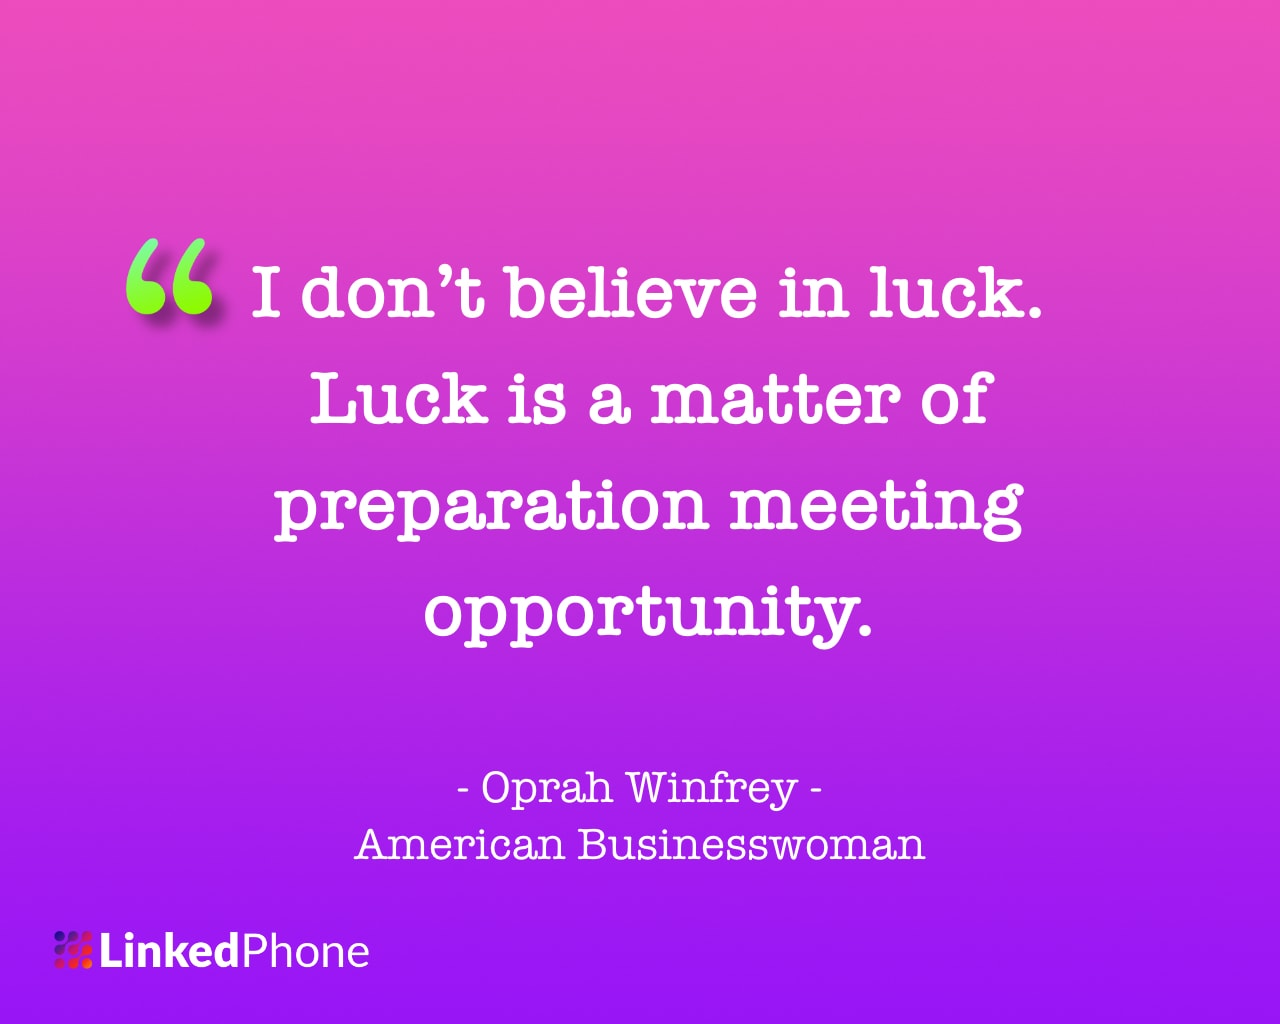 Oprah Winfrey - Motivational Inspirational Quotes and Sayings